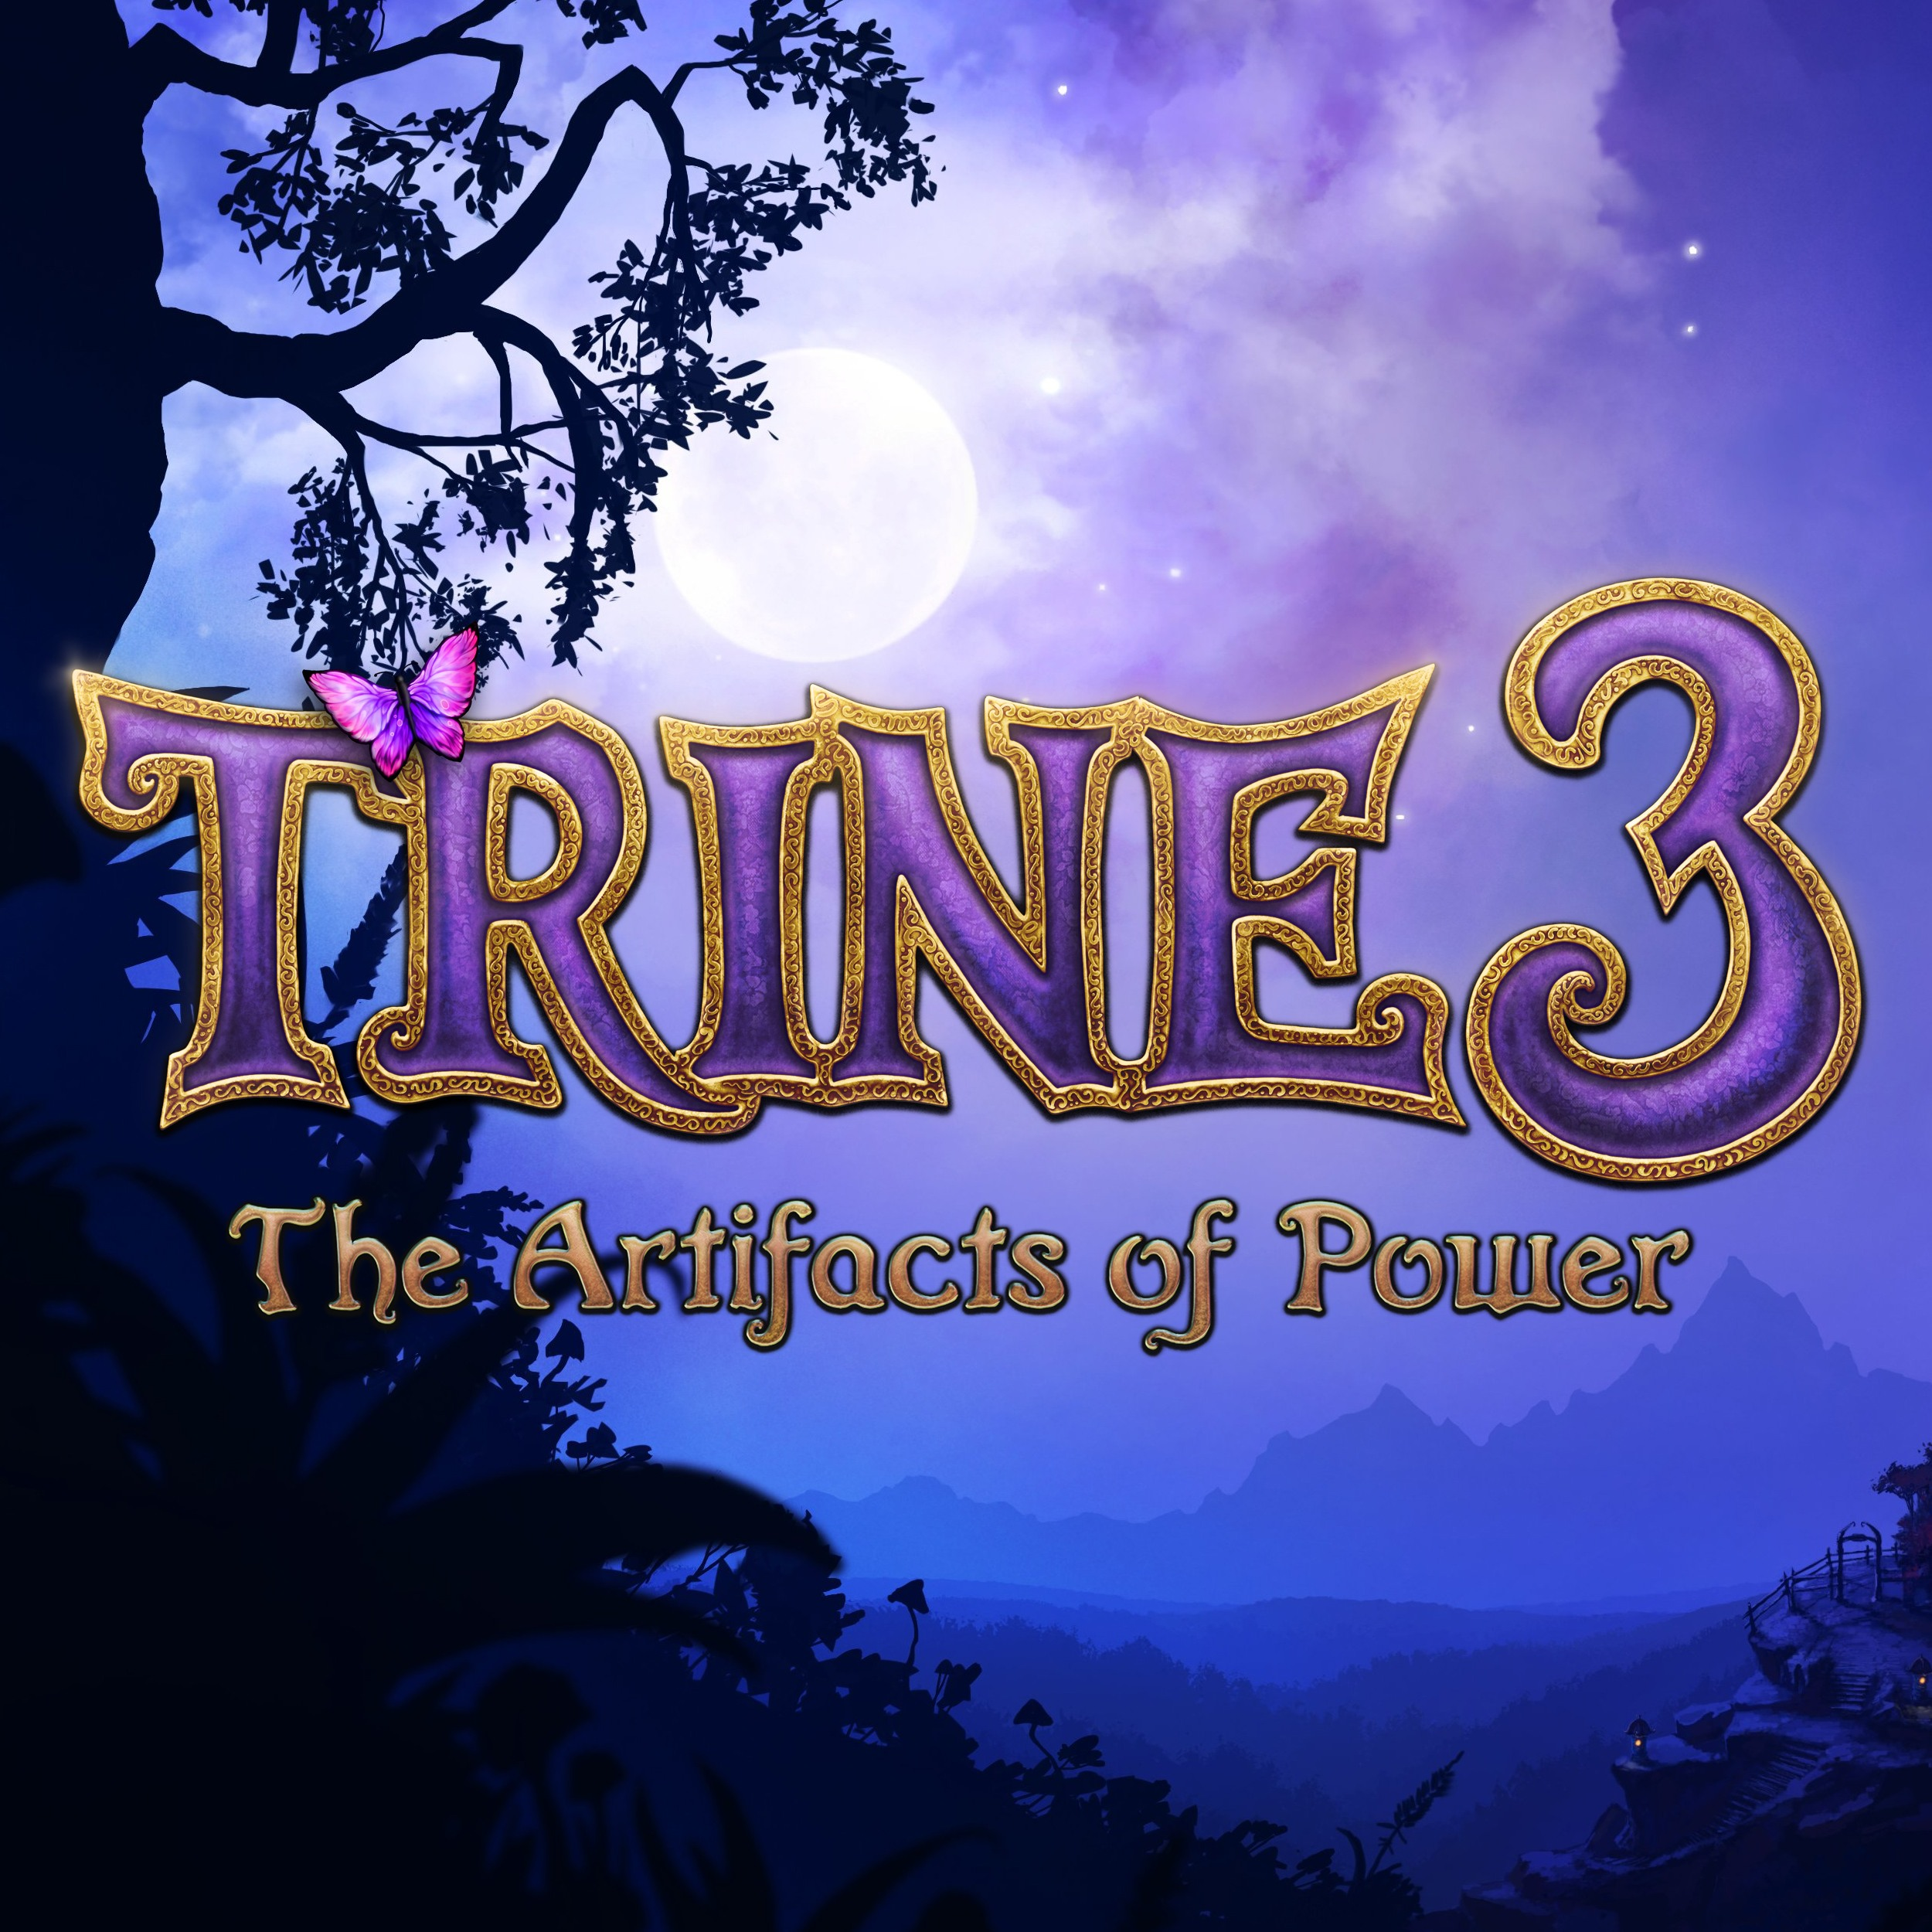 High Resolution Wallpaper | Trine 3: The Artifacts Of Power 2500x2500 px